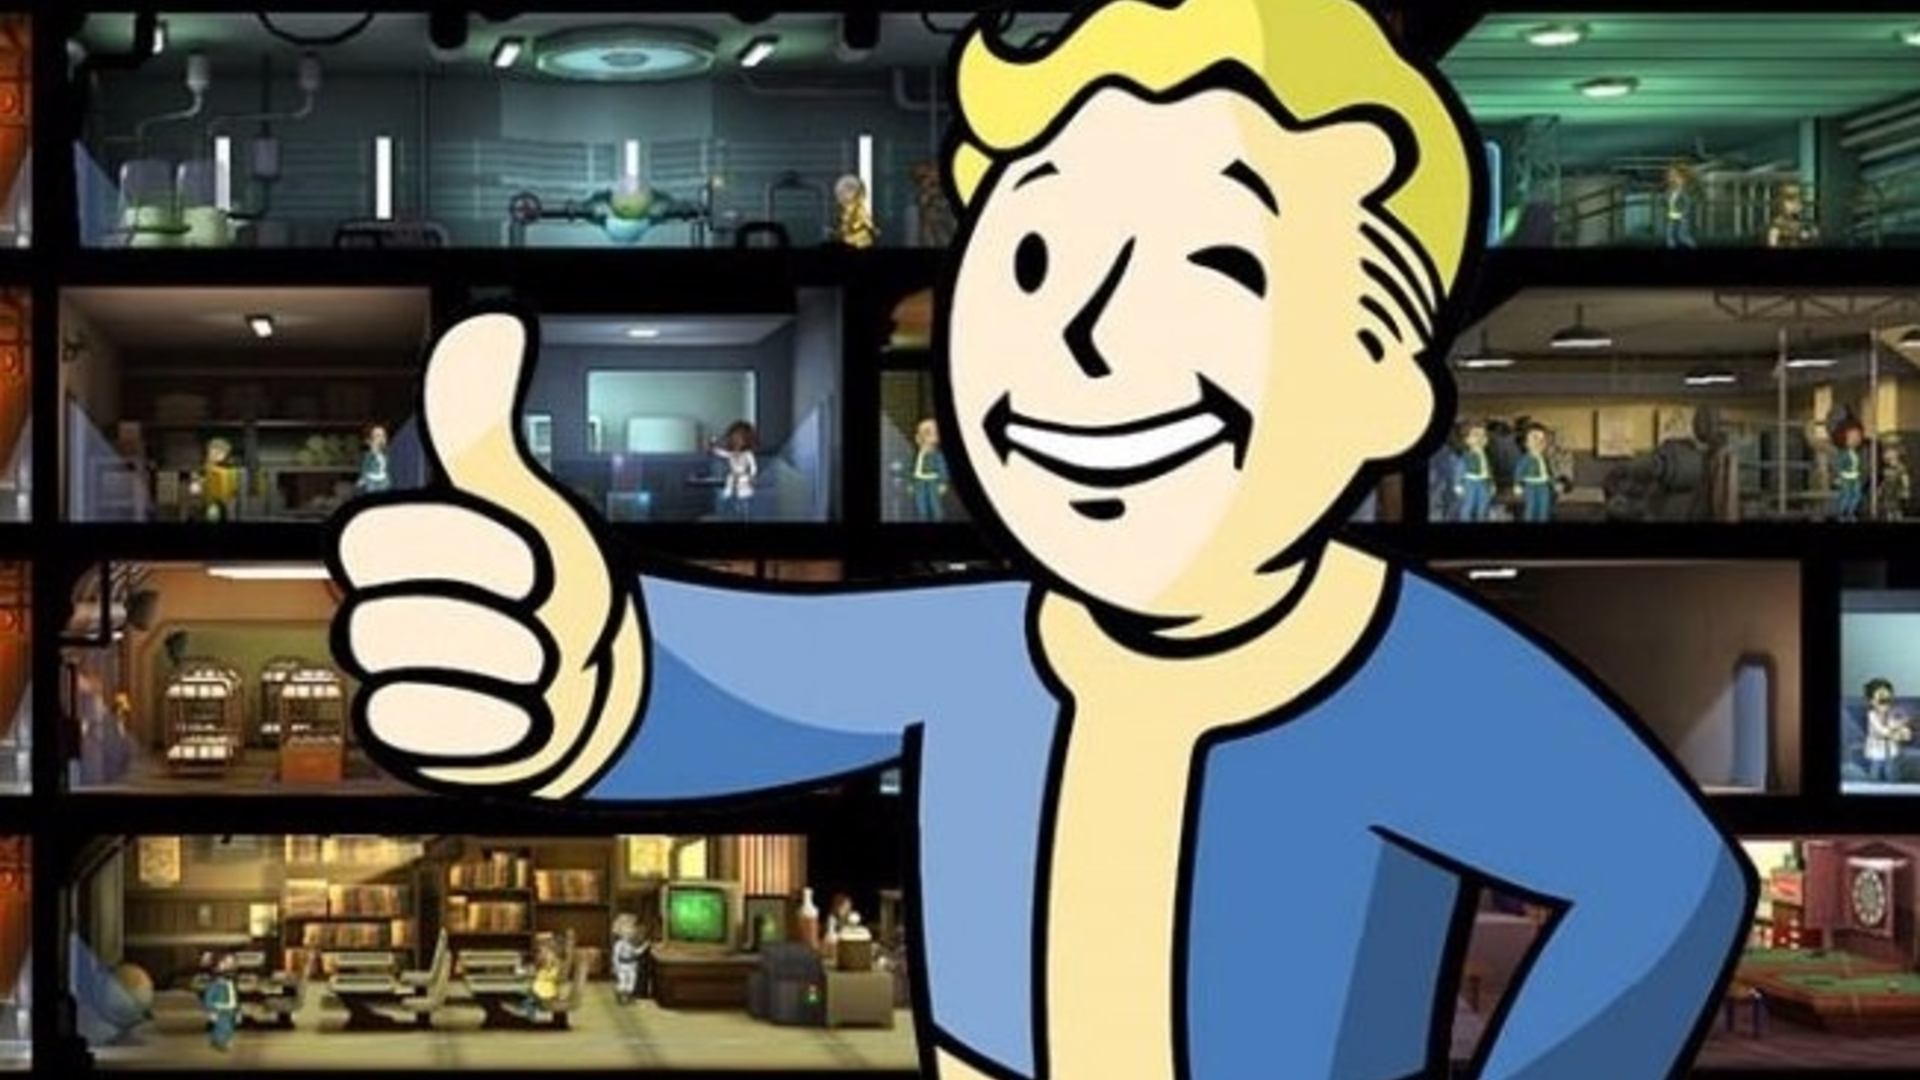 Fallout Shelter will be released on PC this week